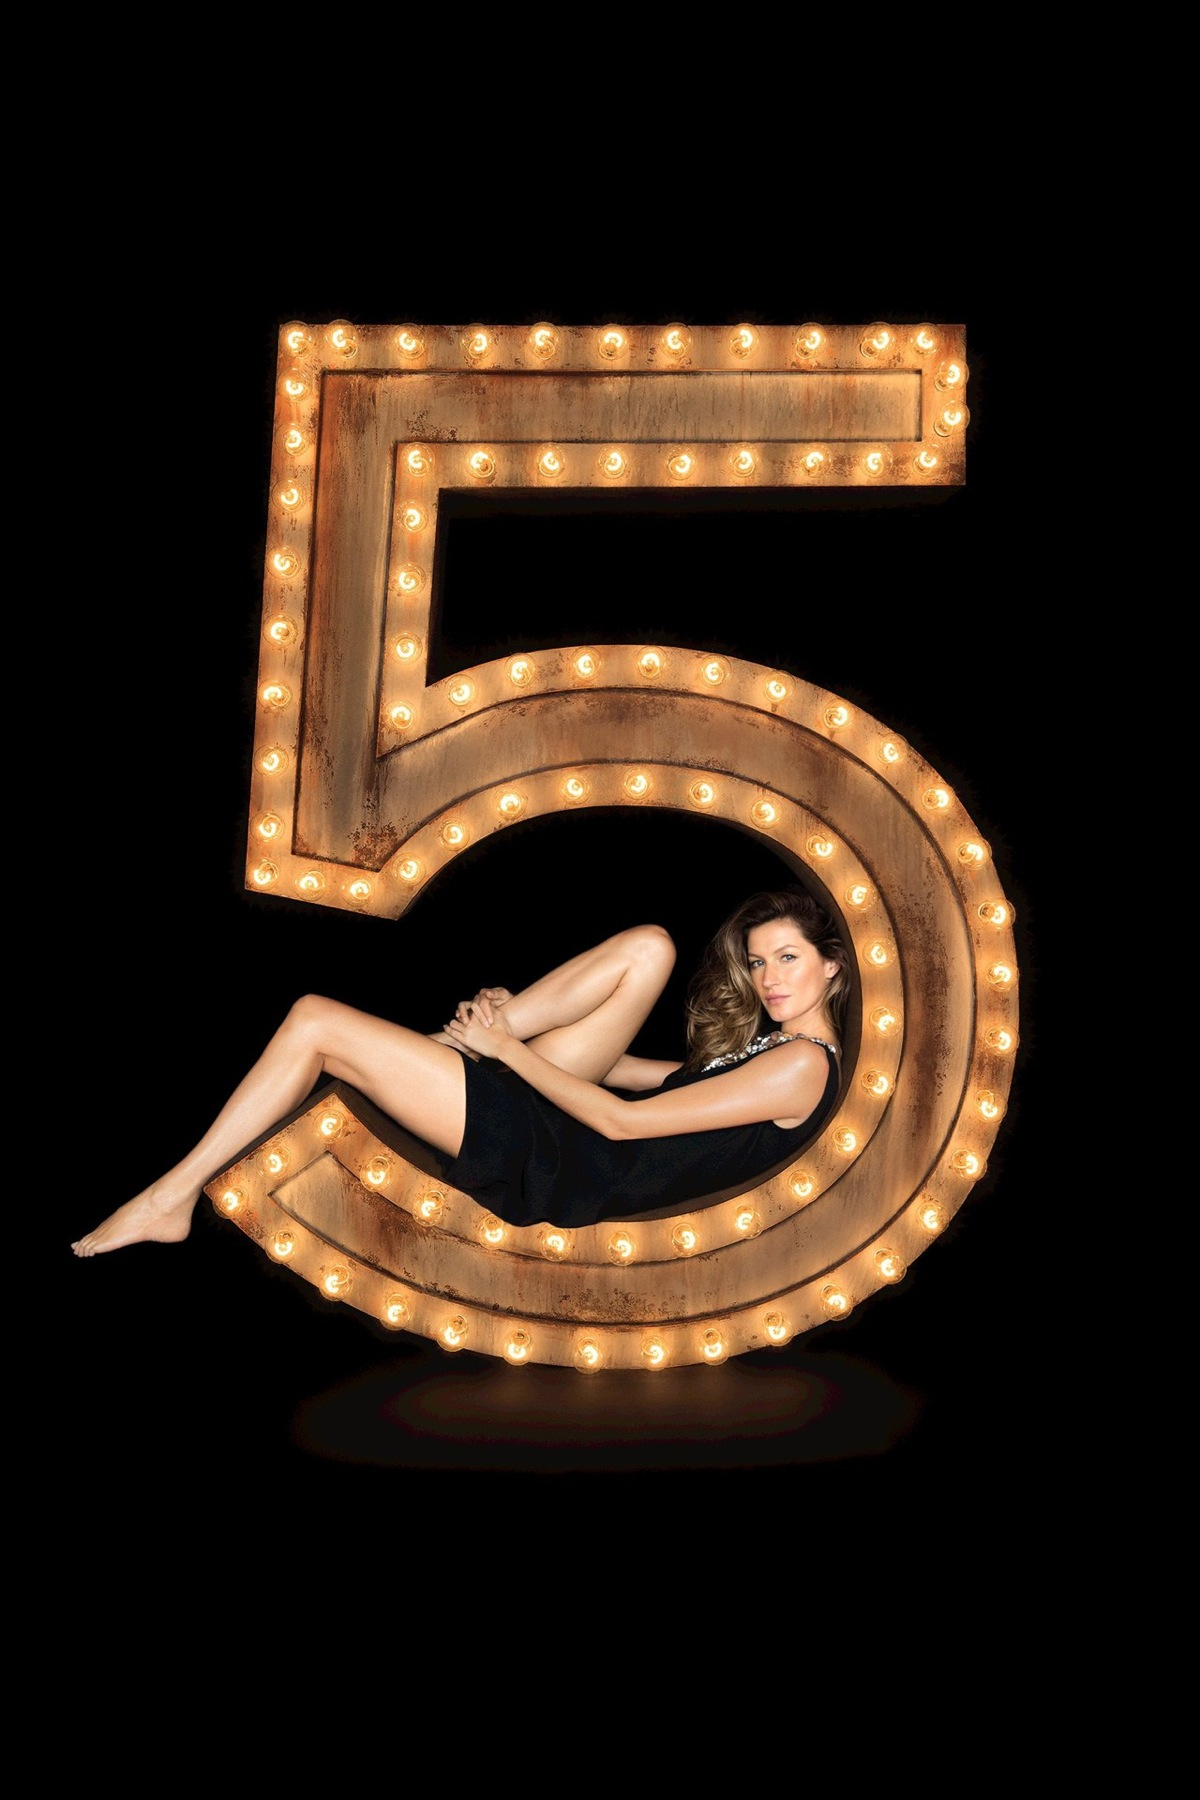 Chanel N 5 Film Featuring Gisele Bundchen 16